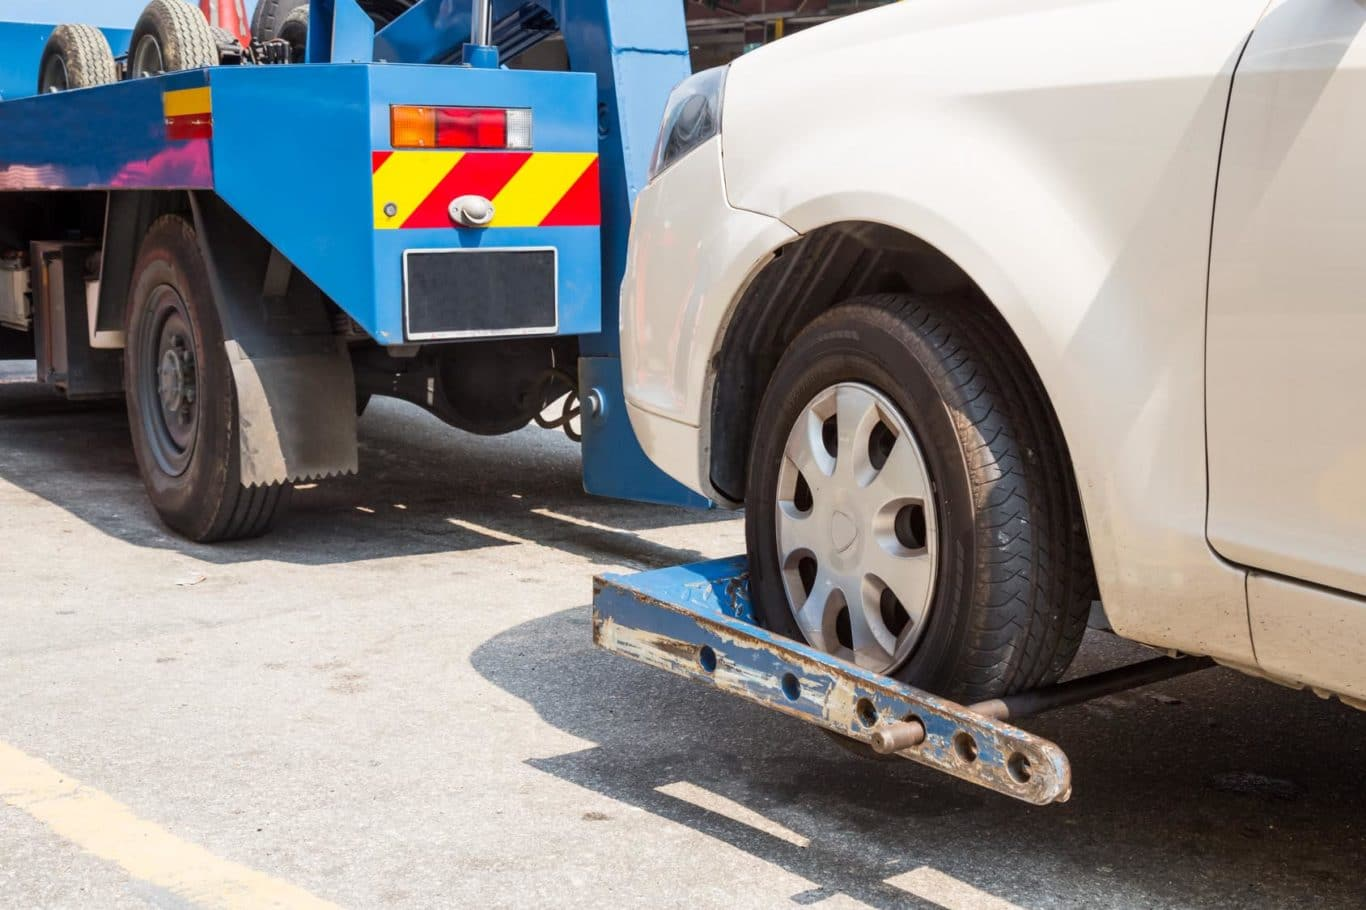 Whitechurch expert Car Recovery services